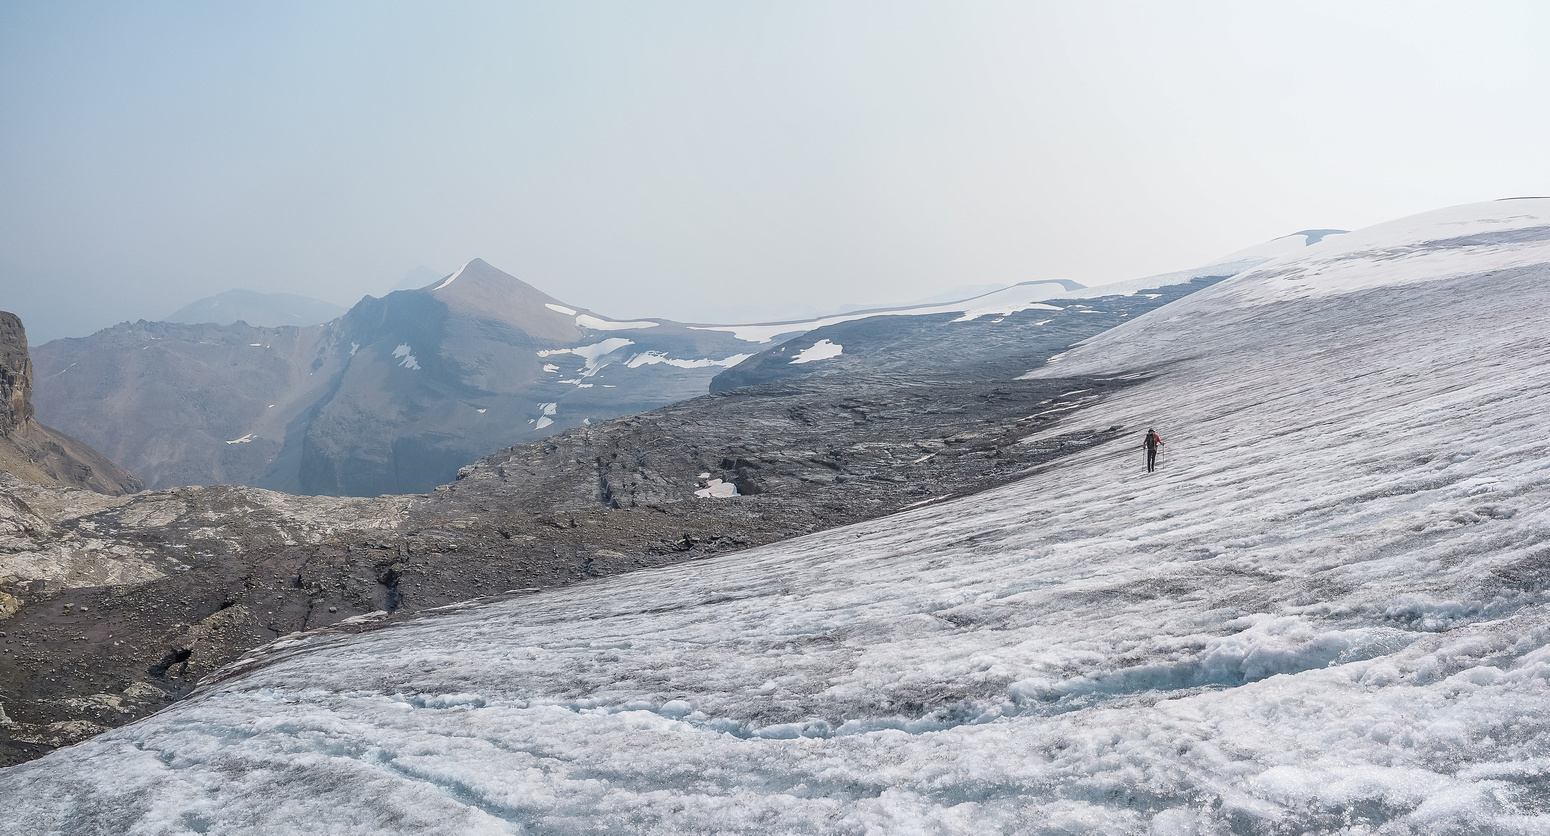 Walking in runners on the low-angled eastern edge of the glacier.